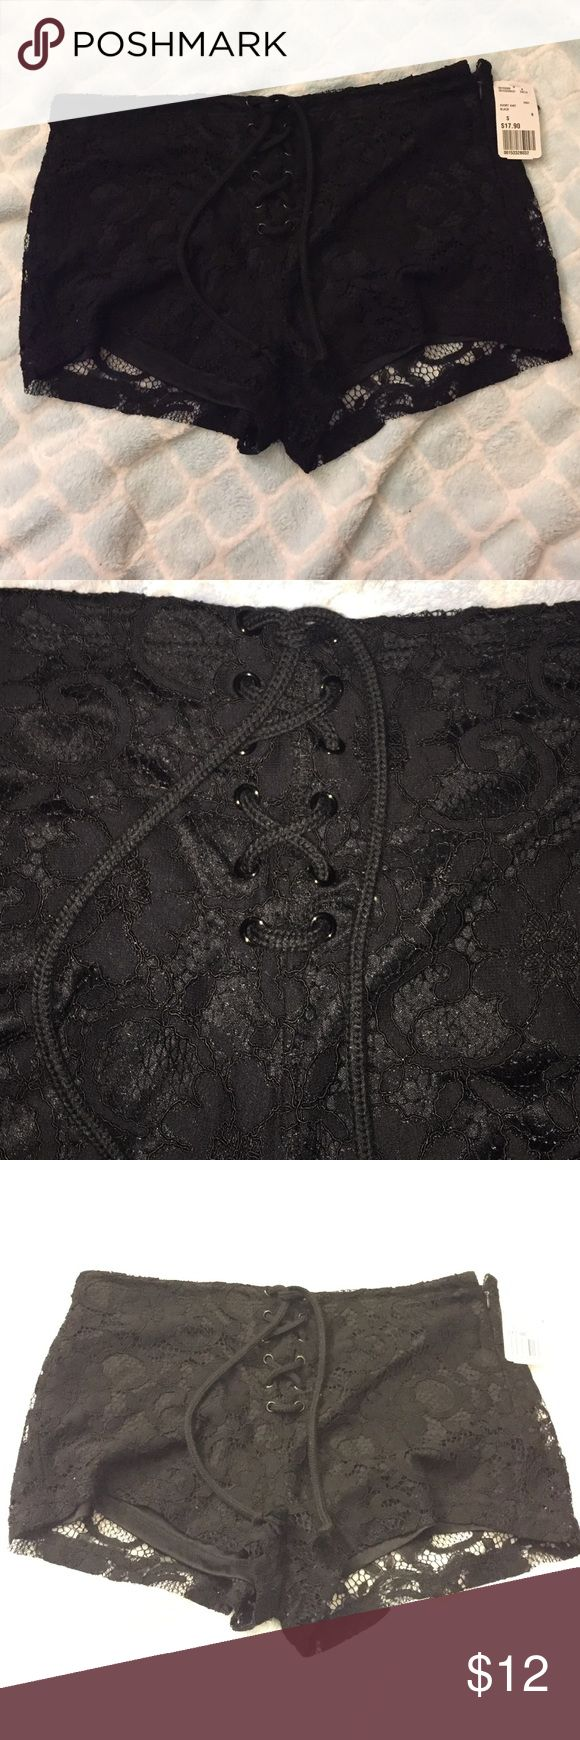 Forever 21 NWT black lace shorts Black lace shorts with lace up front size small. Has a bottom layer so it's not see through. Fits a little loose for a small. New with tags Forever 21 Shorts